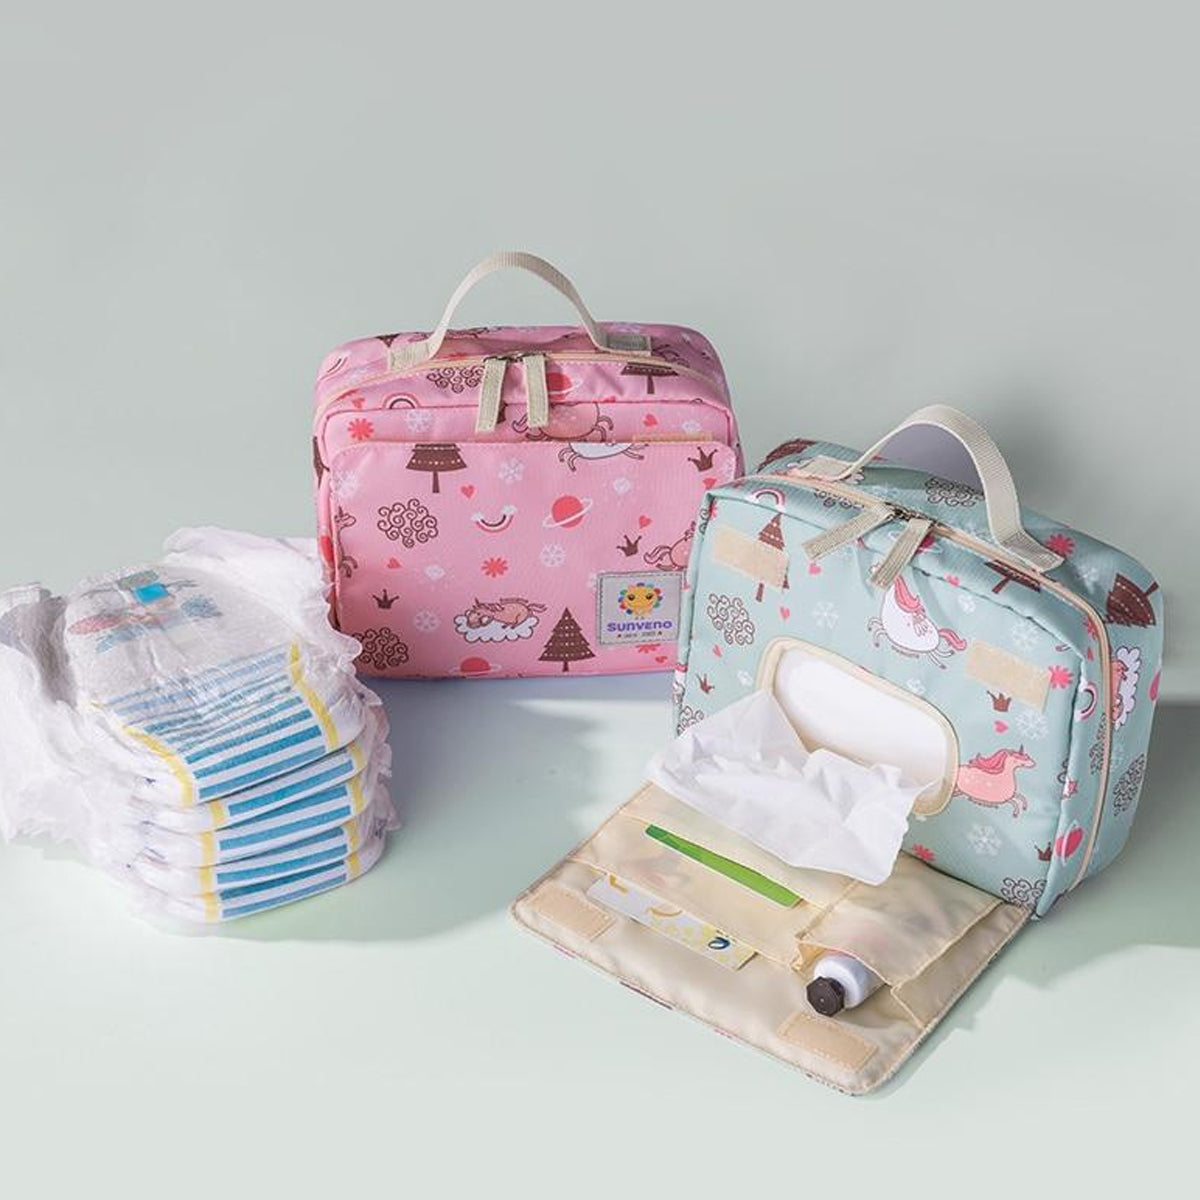 Portable Polyester-made Diaper Clutch Bag with Refillable Wipe Holder